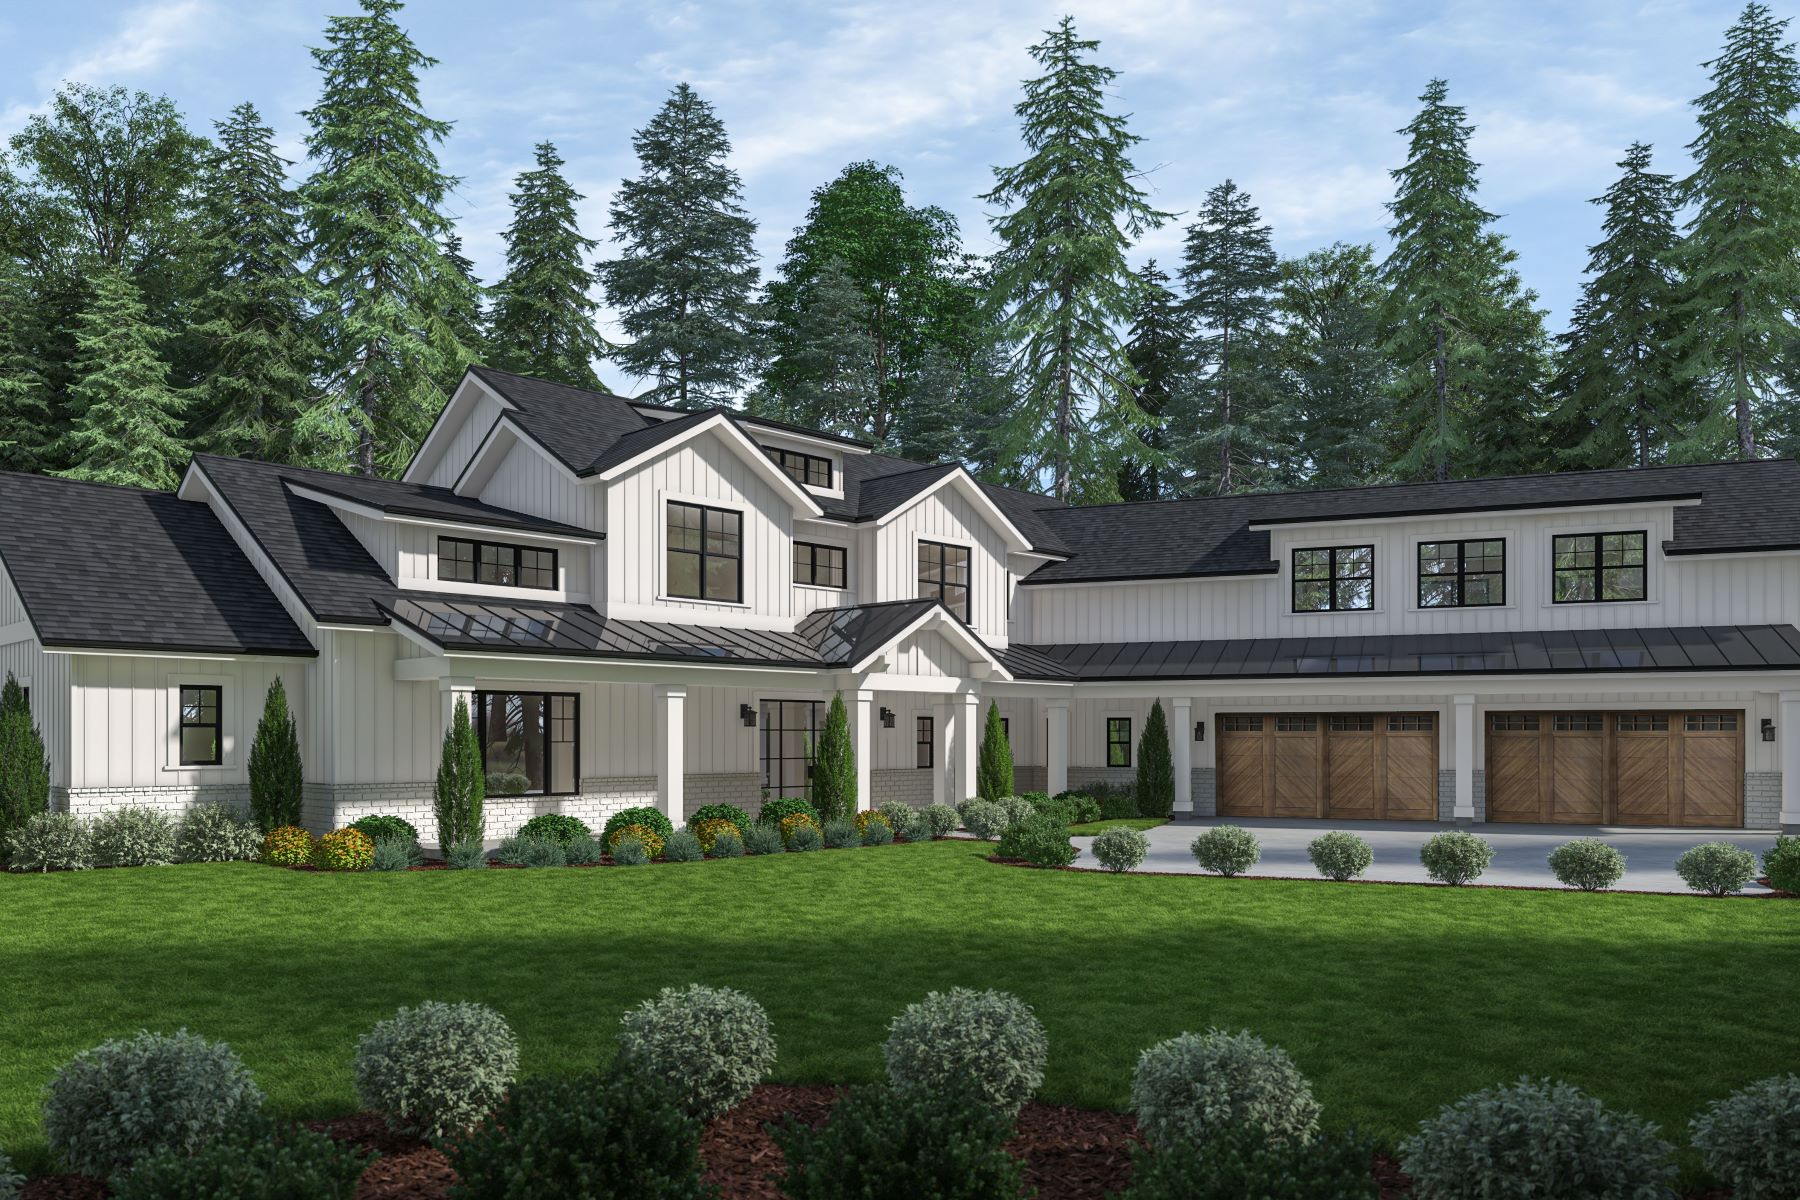 Single Family Homes for Sale at 2836 140th Ave NE, Bellevue, WA 98005 Bellevue, Washington 98005 United States